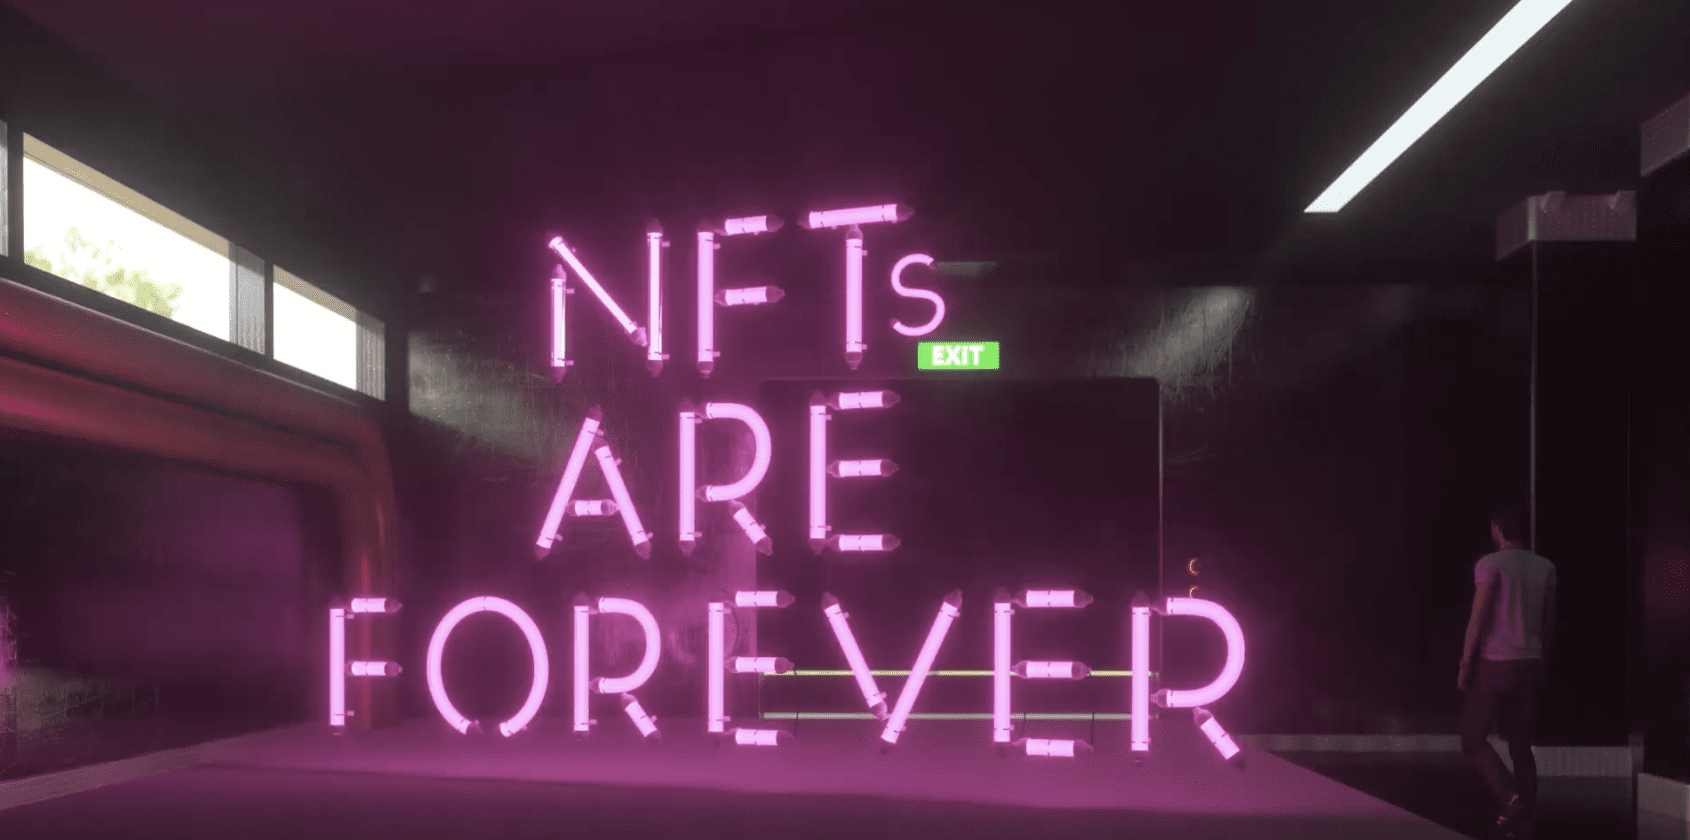 NFTs are Taking the Art World by Storm, but are They Forever? Beeple Thinks So